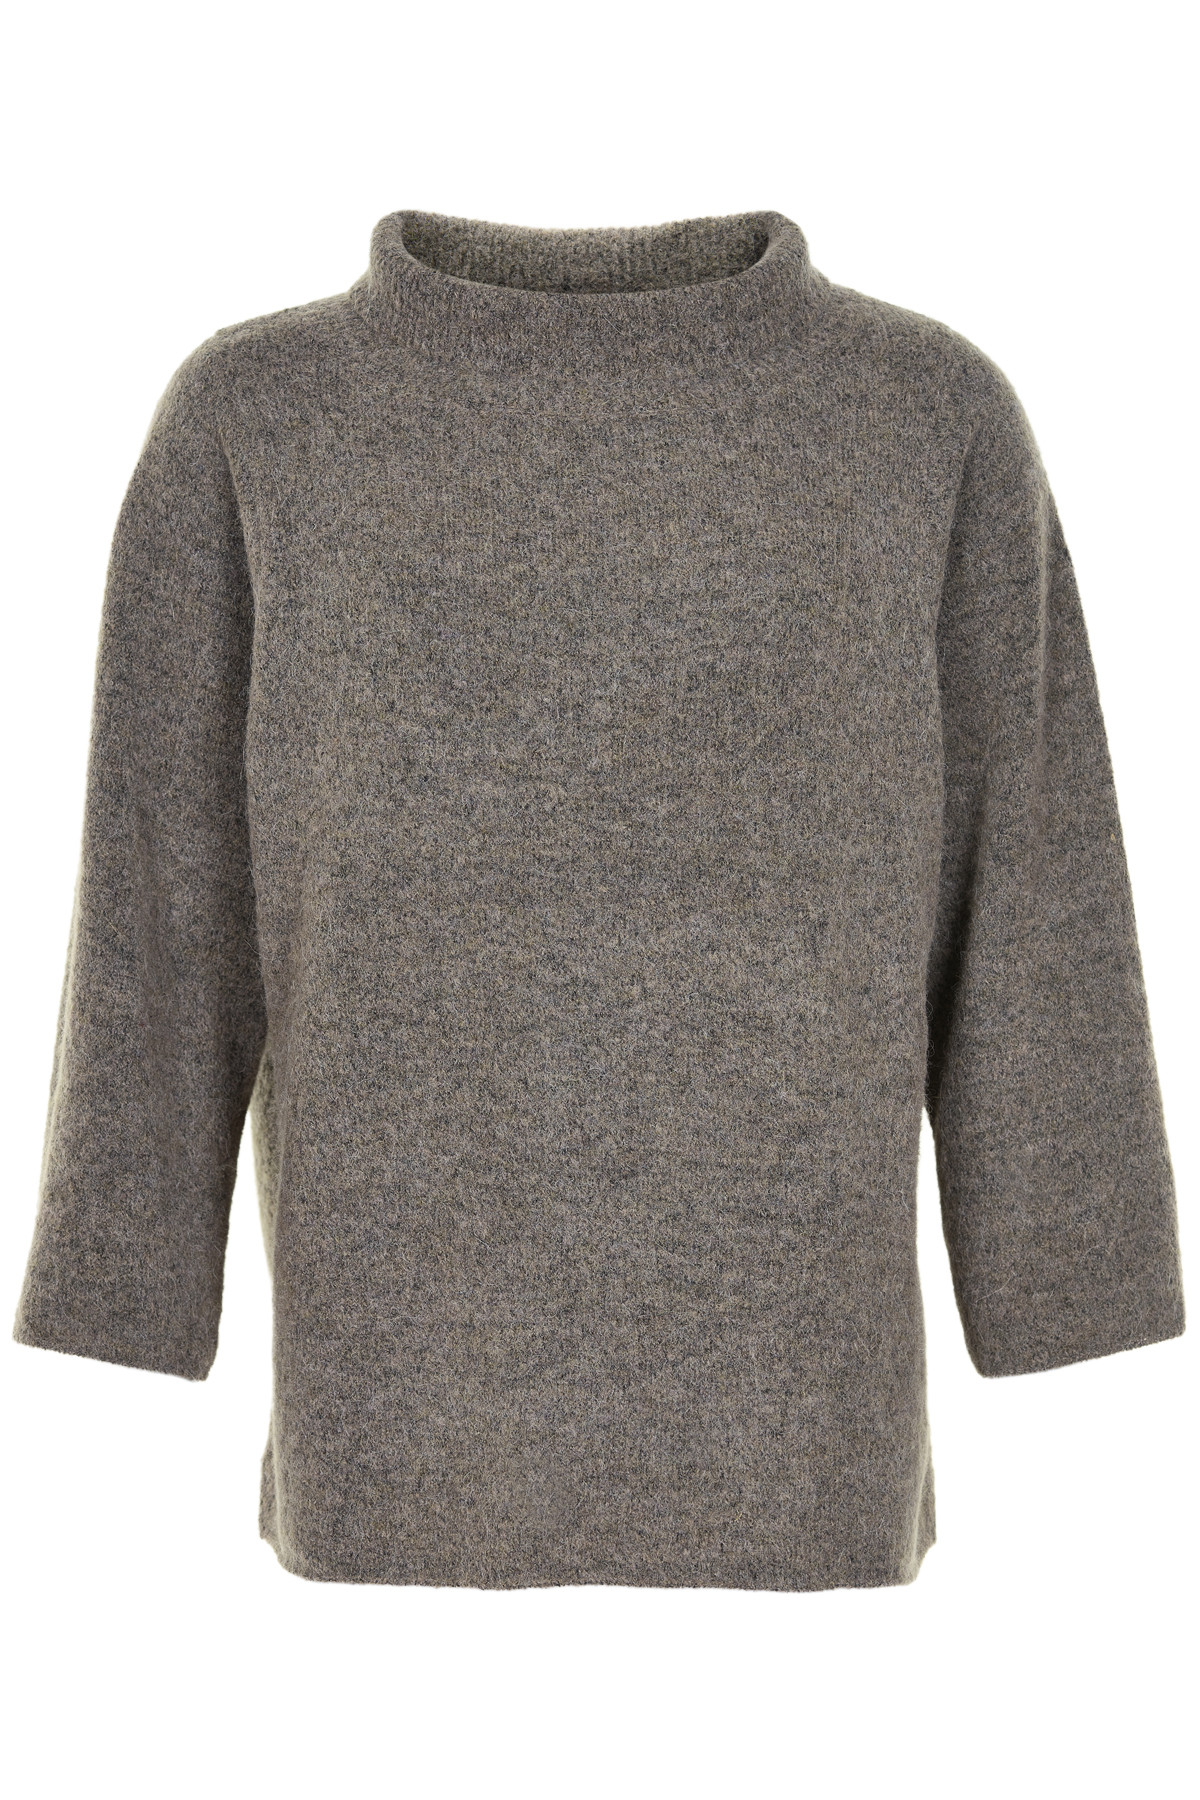 Image of   AND LESS ALELENORE PULLOVER 5519204 W (Walnut, L)